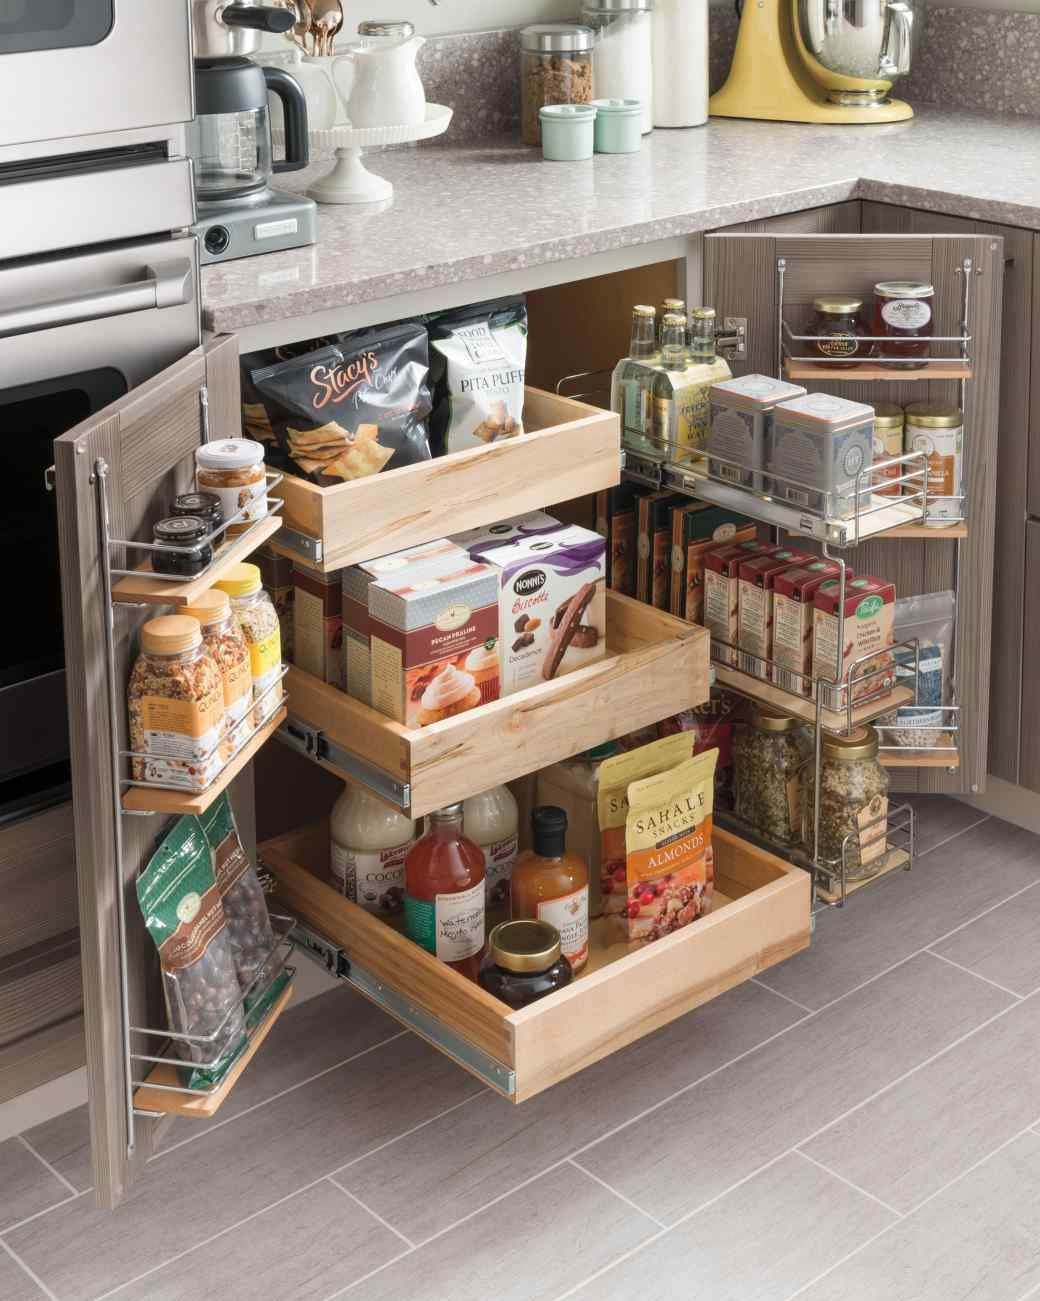 Small Kitchen Storage Ideas For A More Efficient Space Diy Kitchen Storage Small Kitchen Storage Kitchen Remodel Small